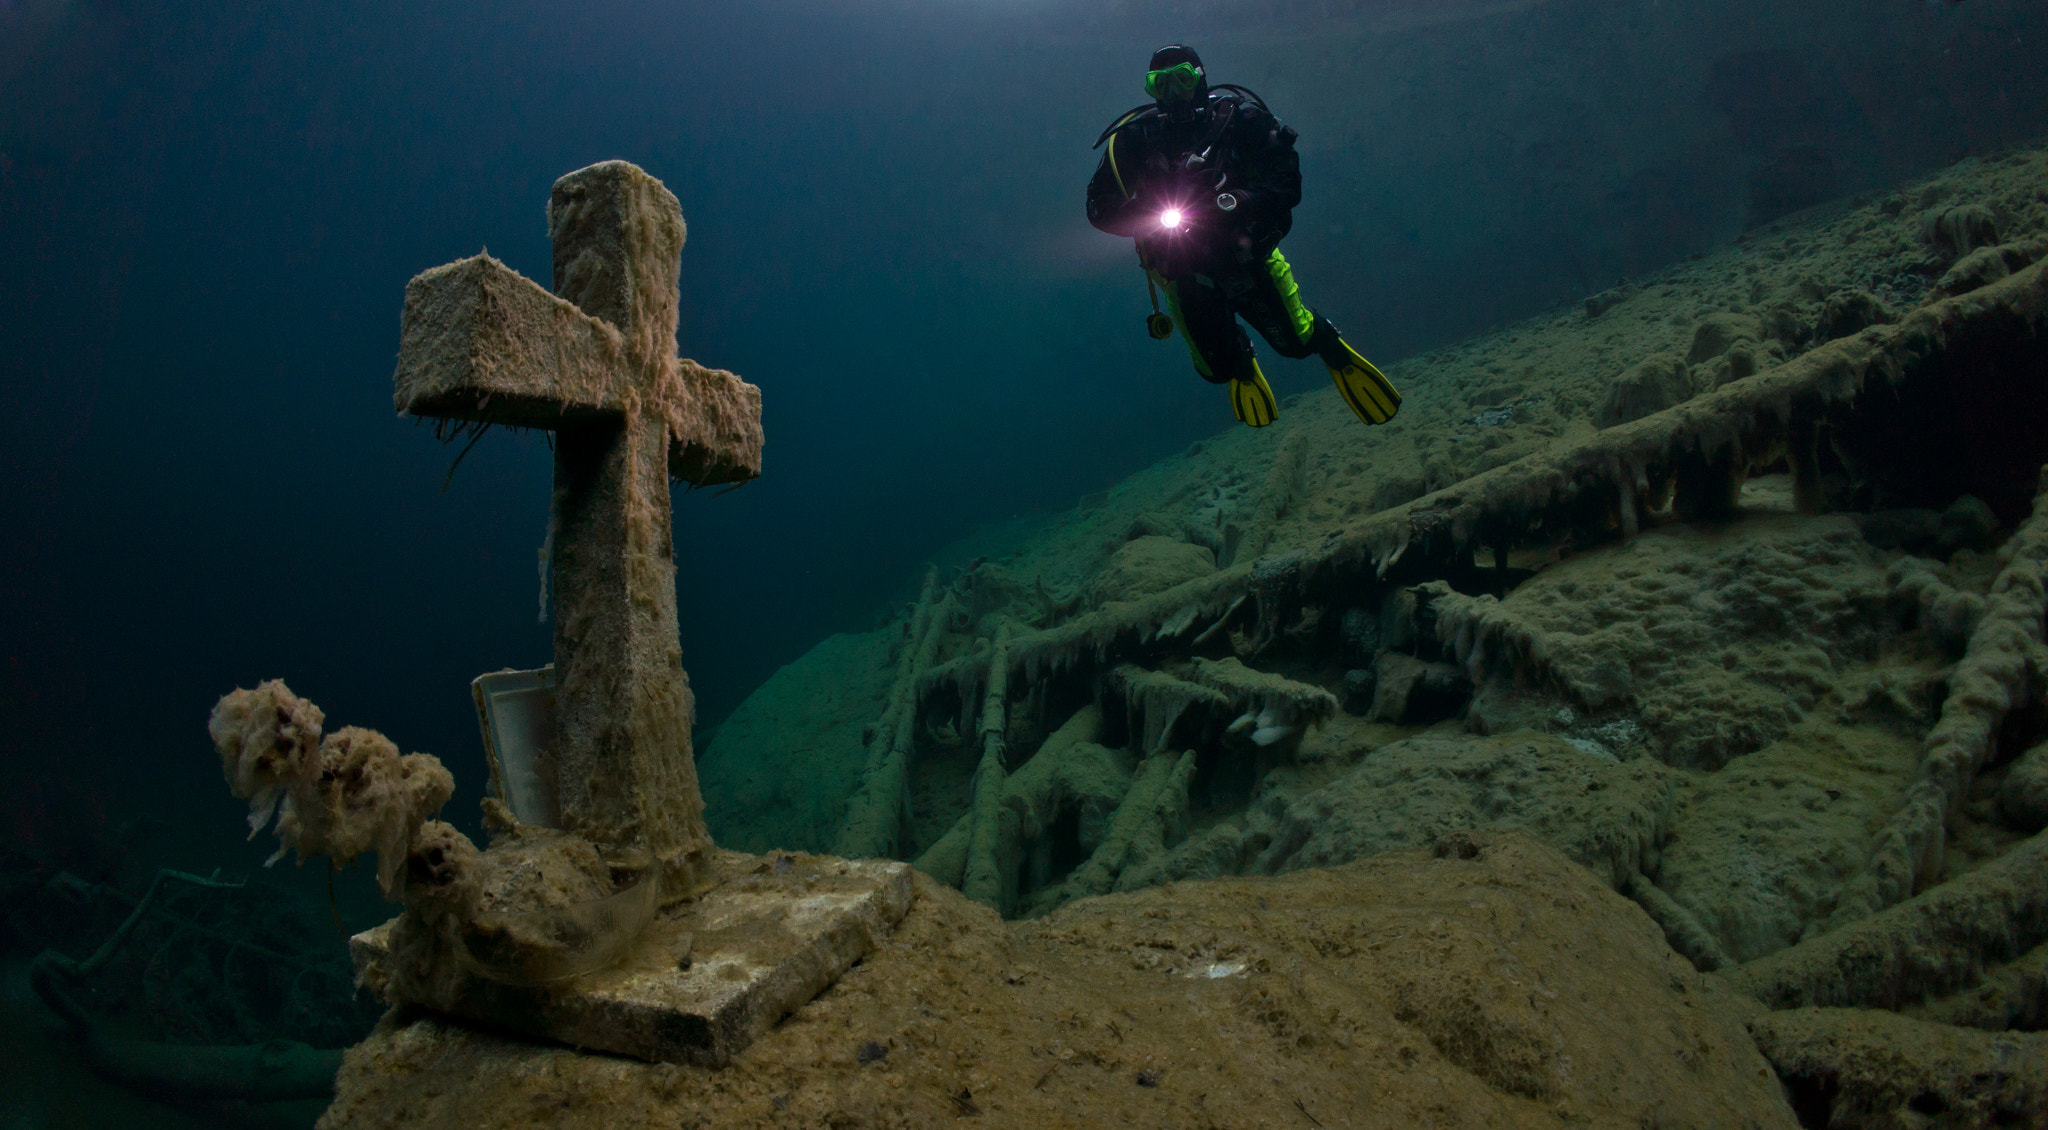 Photograph The Cross by Thomas Marti on 500px